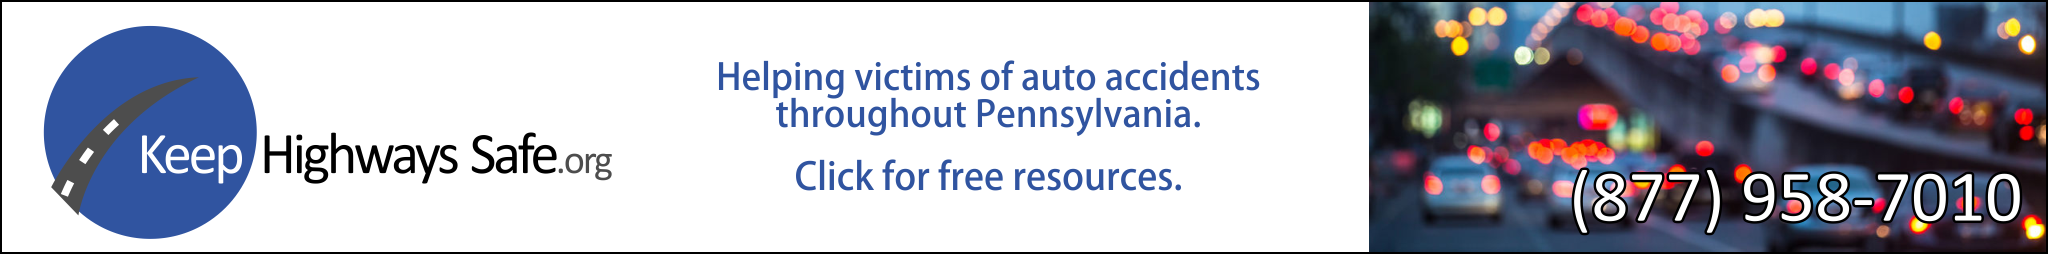 Wilkes Barre-Scranton, PA - Accident News and Resources for